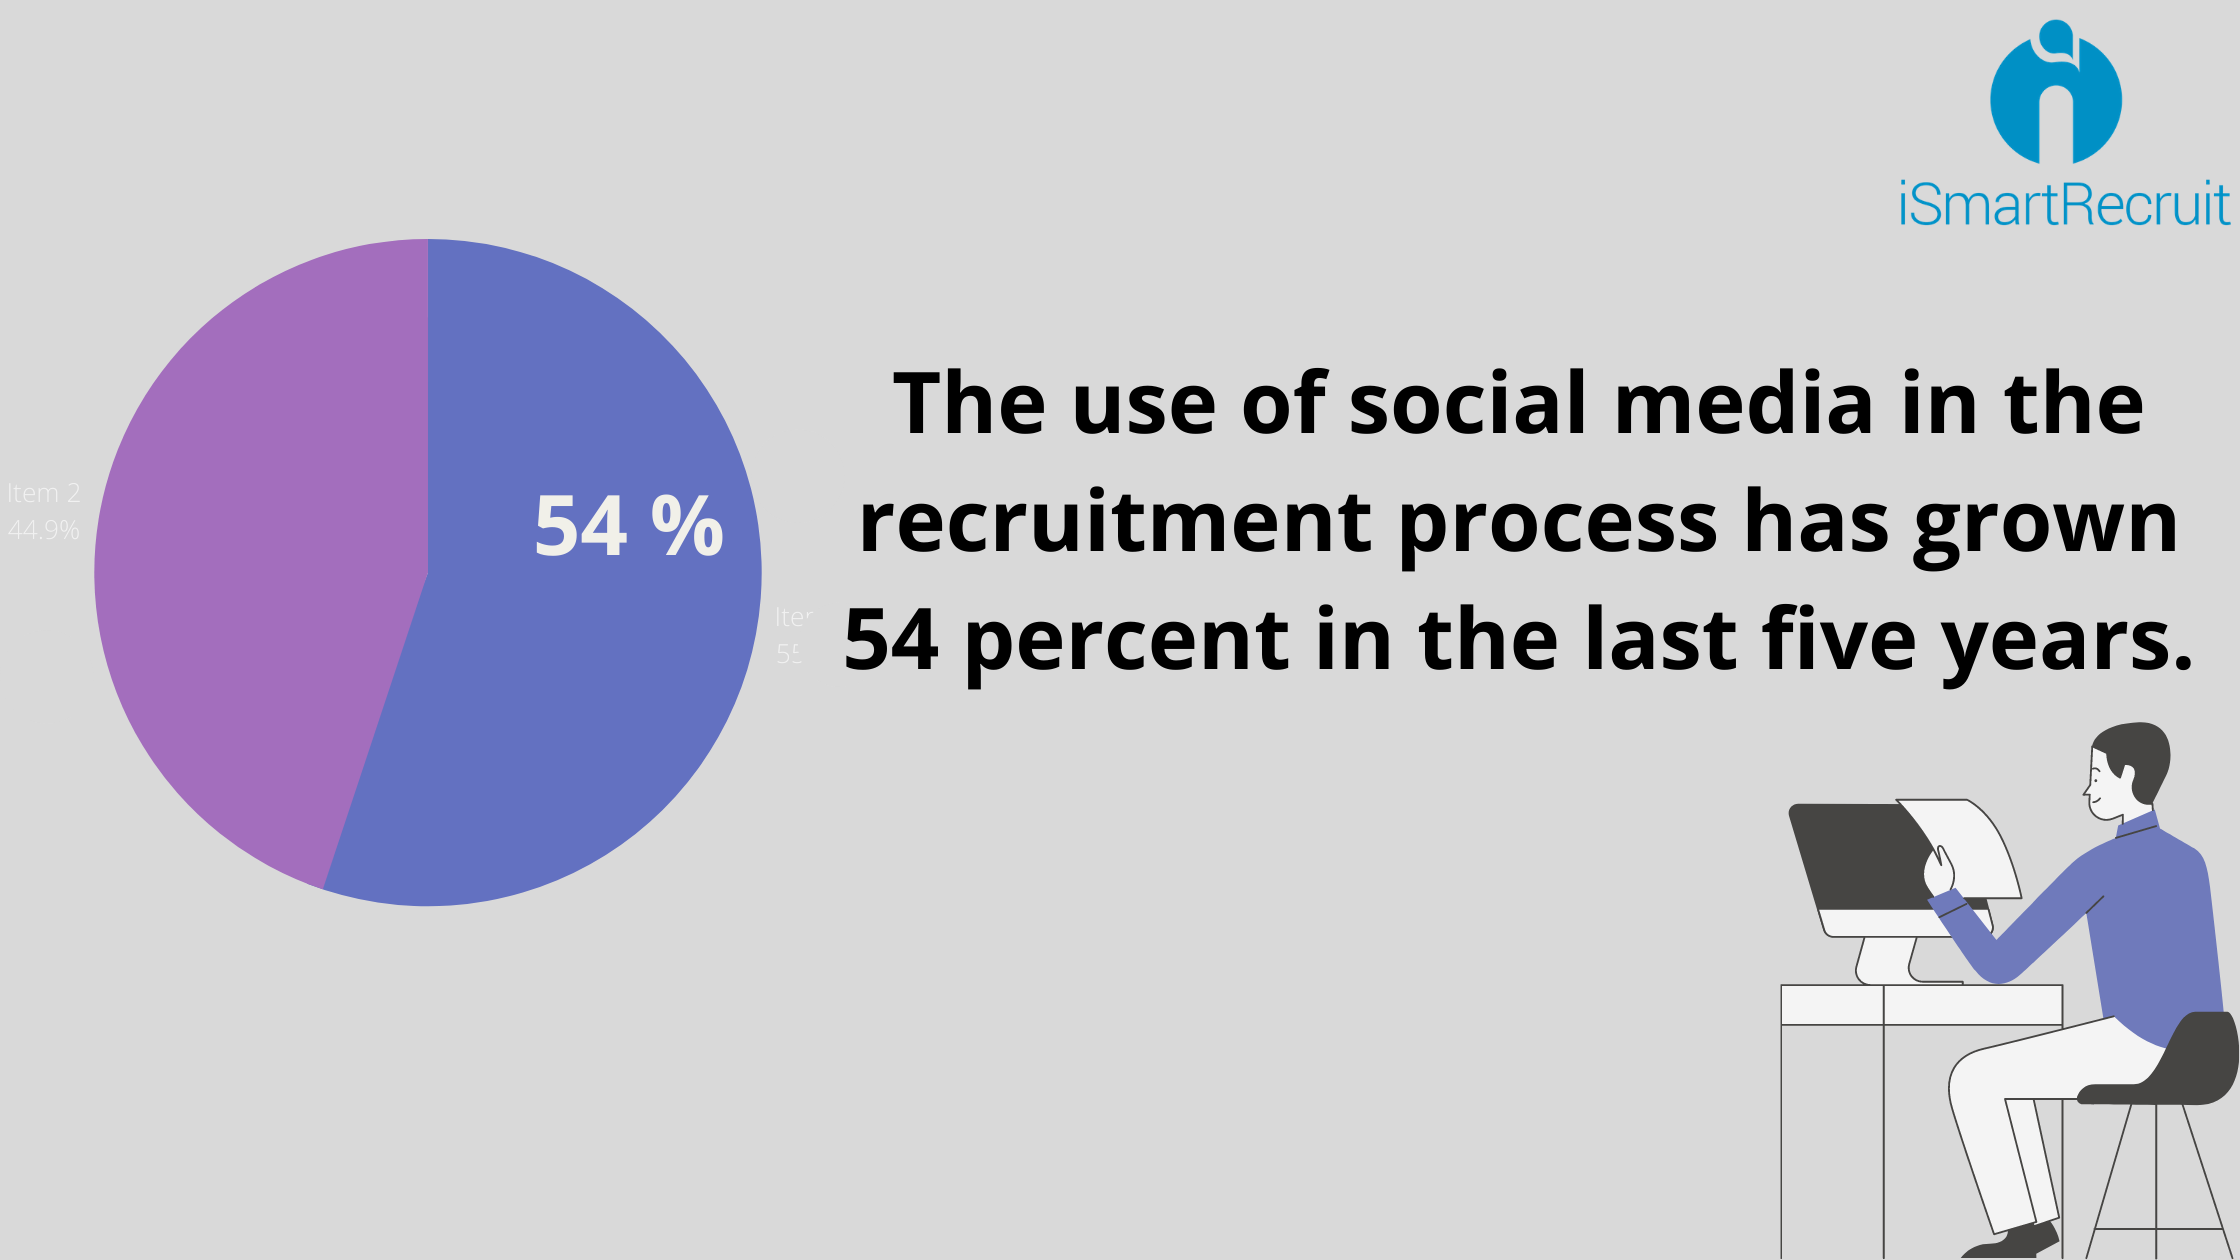 People use social media in recruiting process